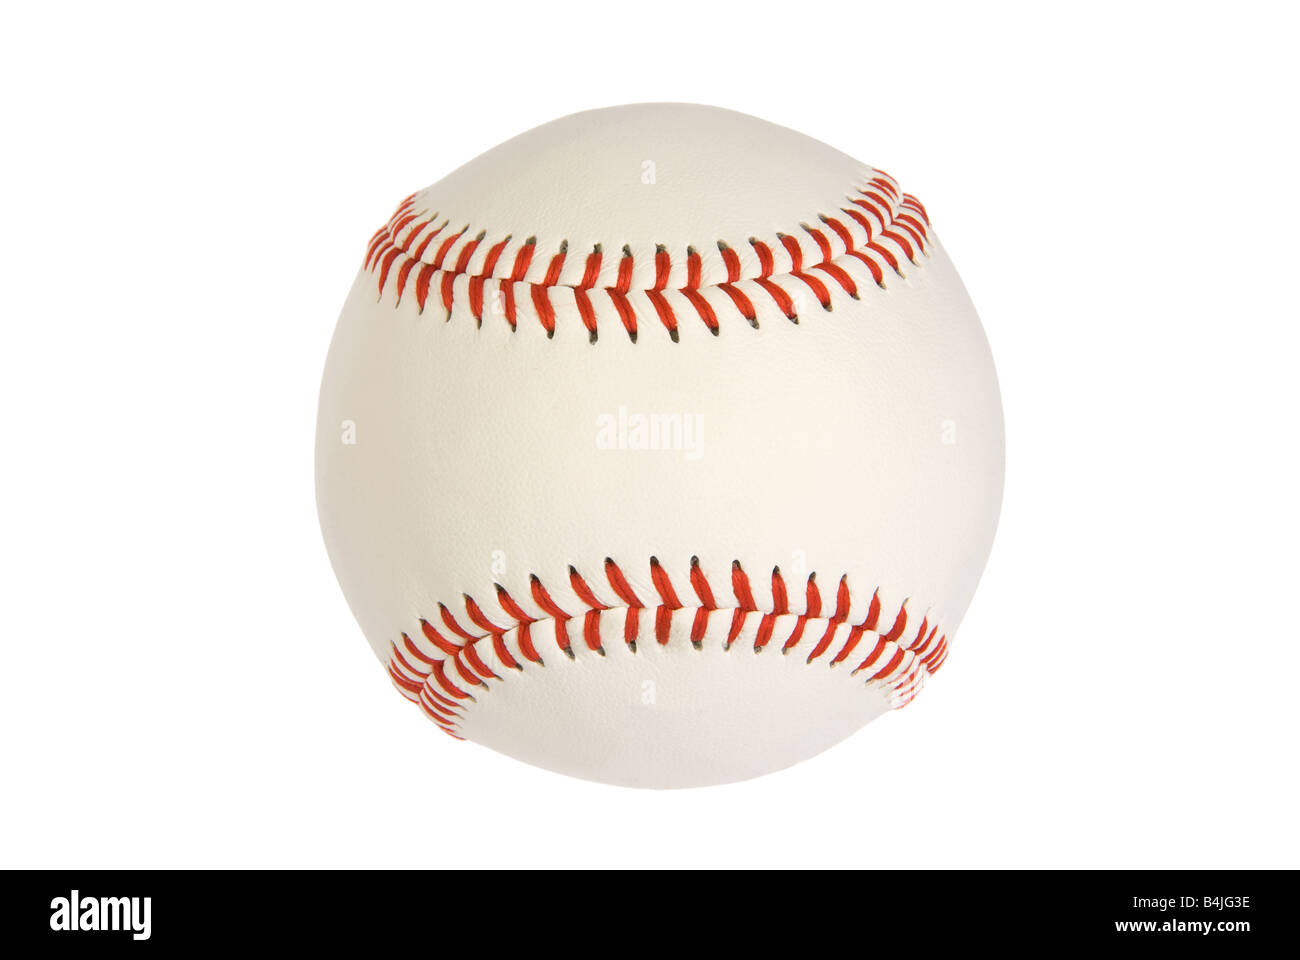 A new baseball isolated on white with red stitching - Stock Image